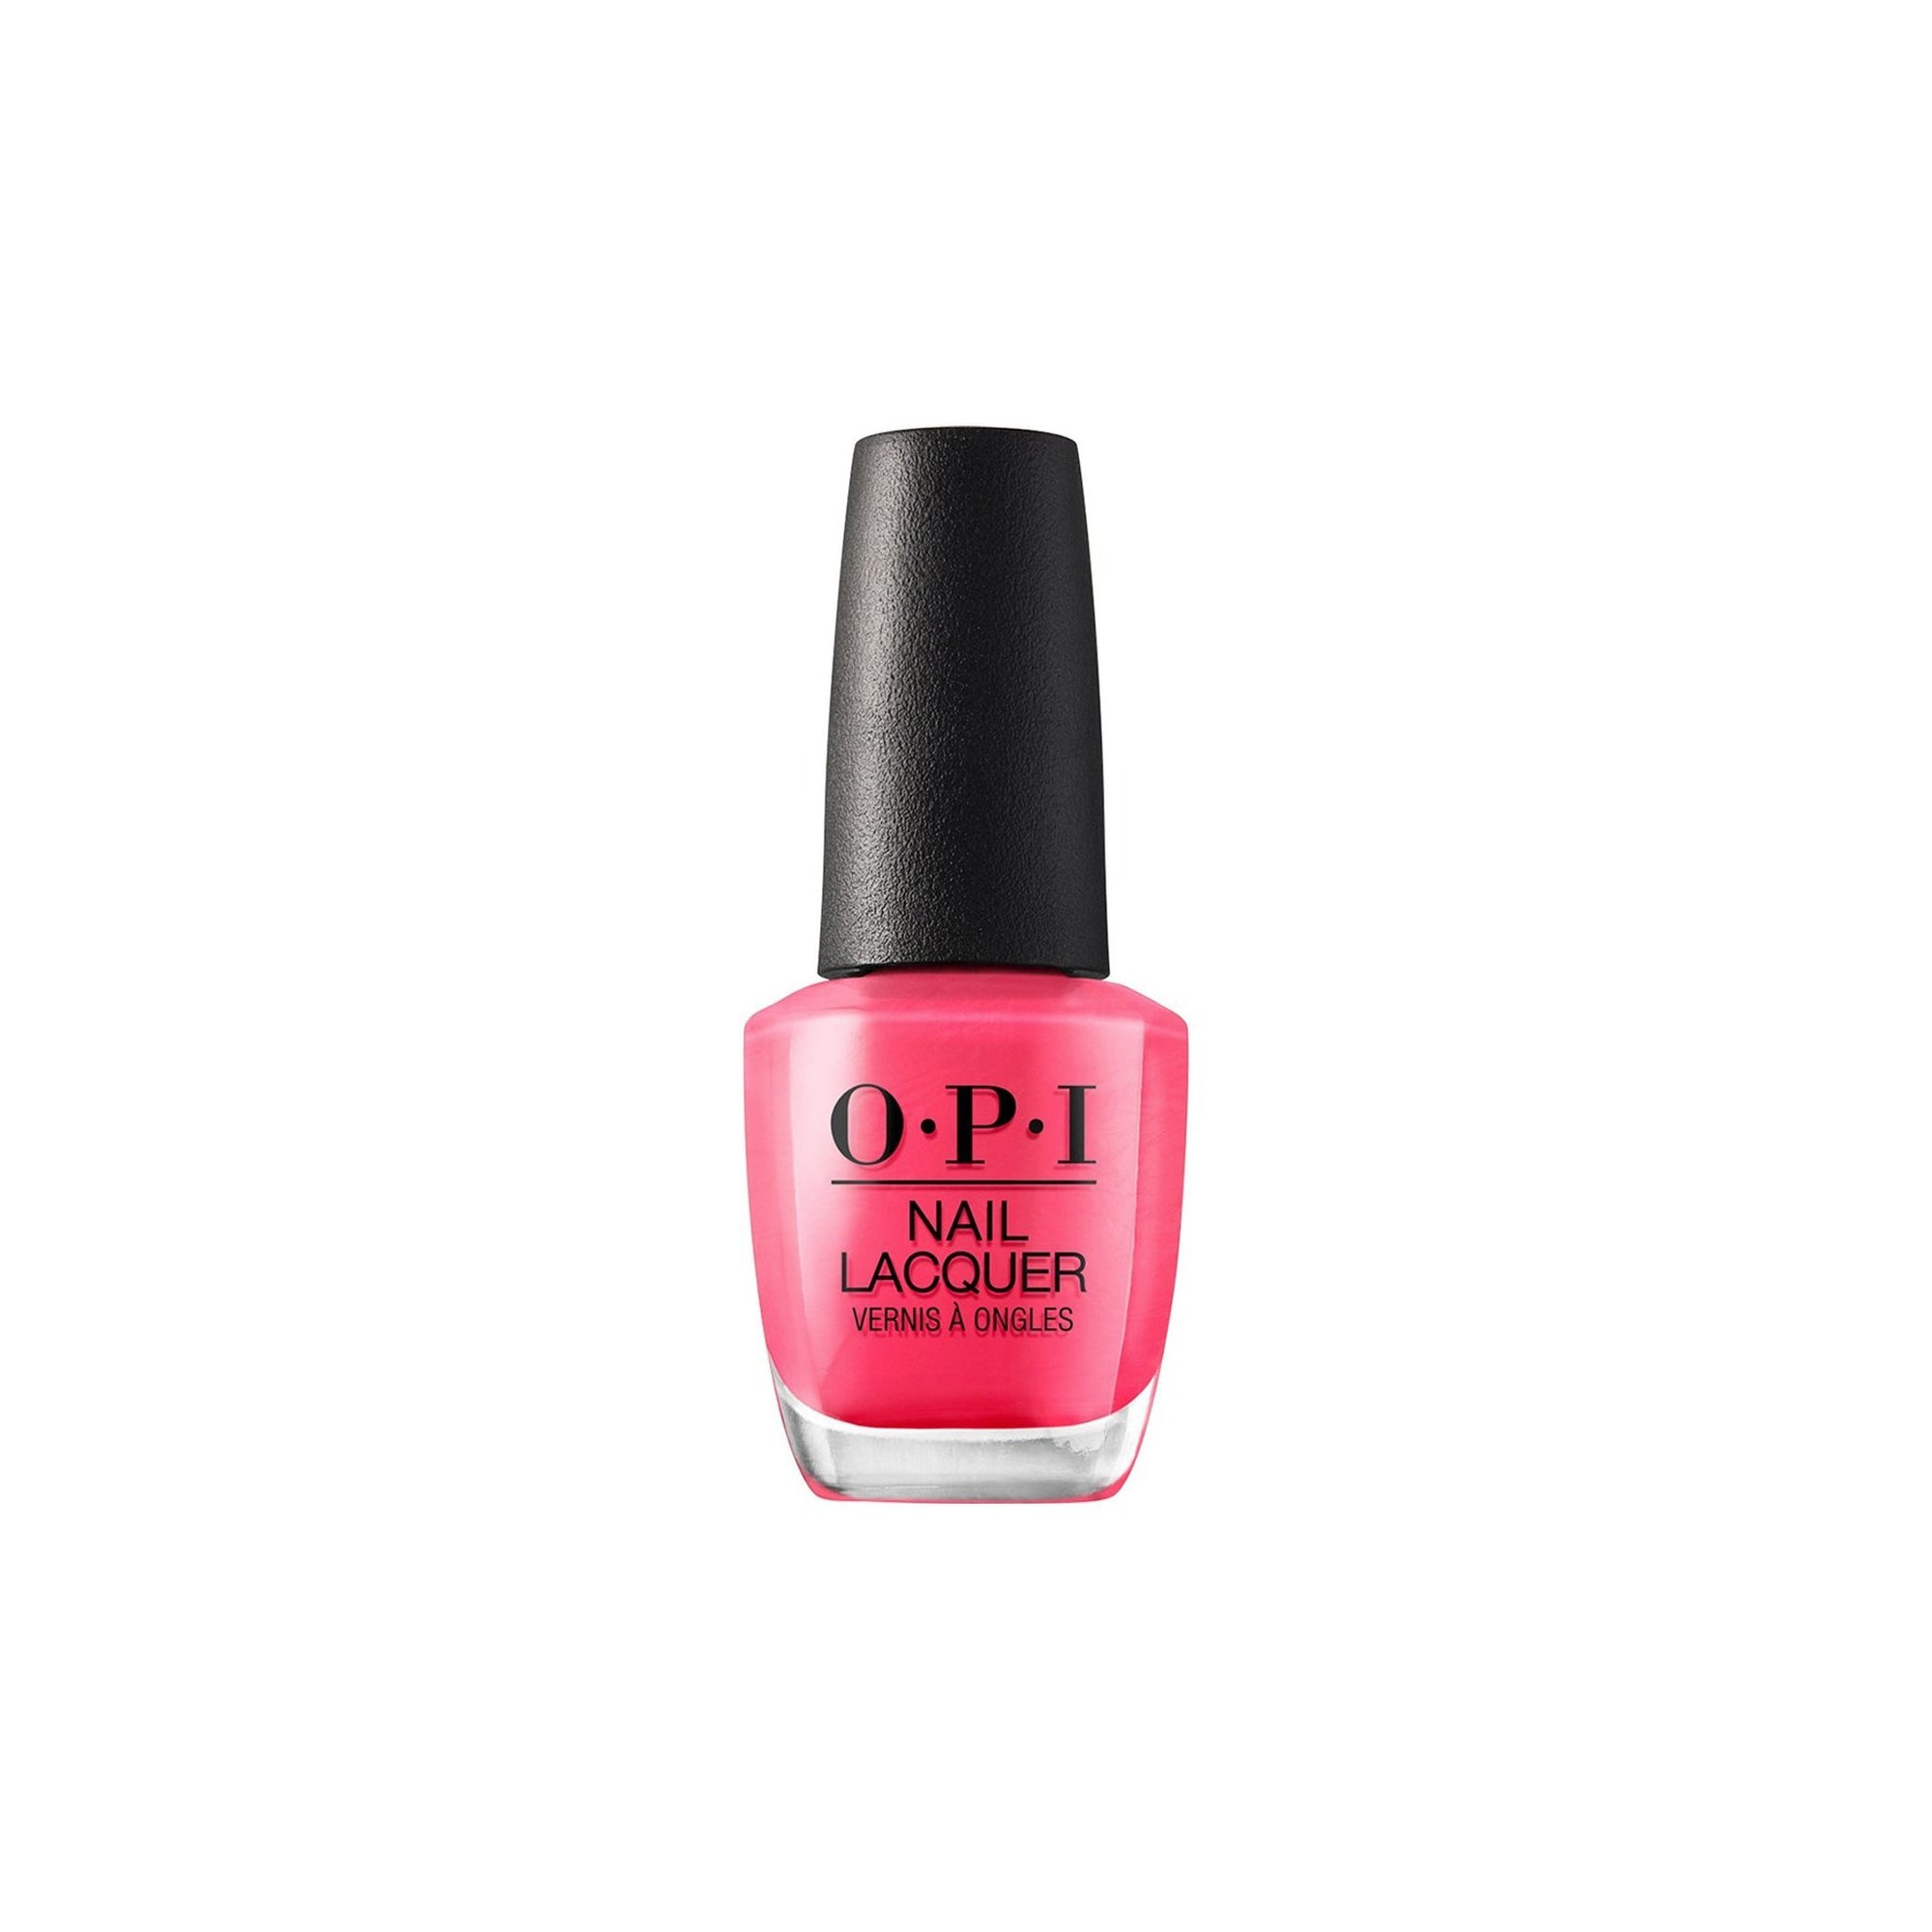 O.P.I Nail Lacquer - Strawberry Margarita